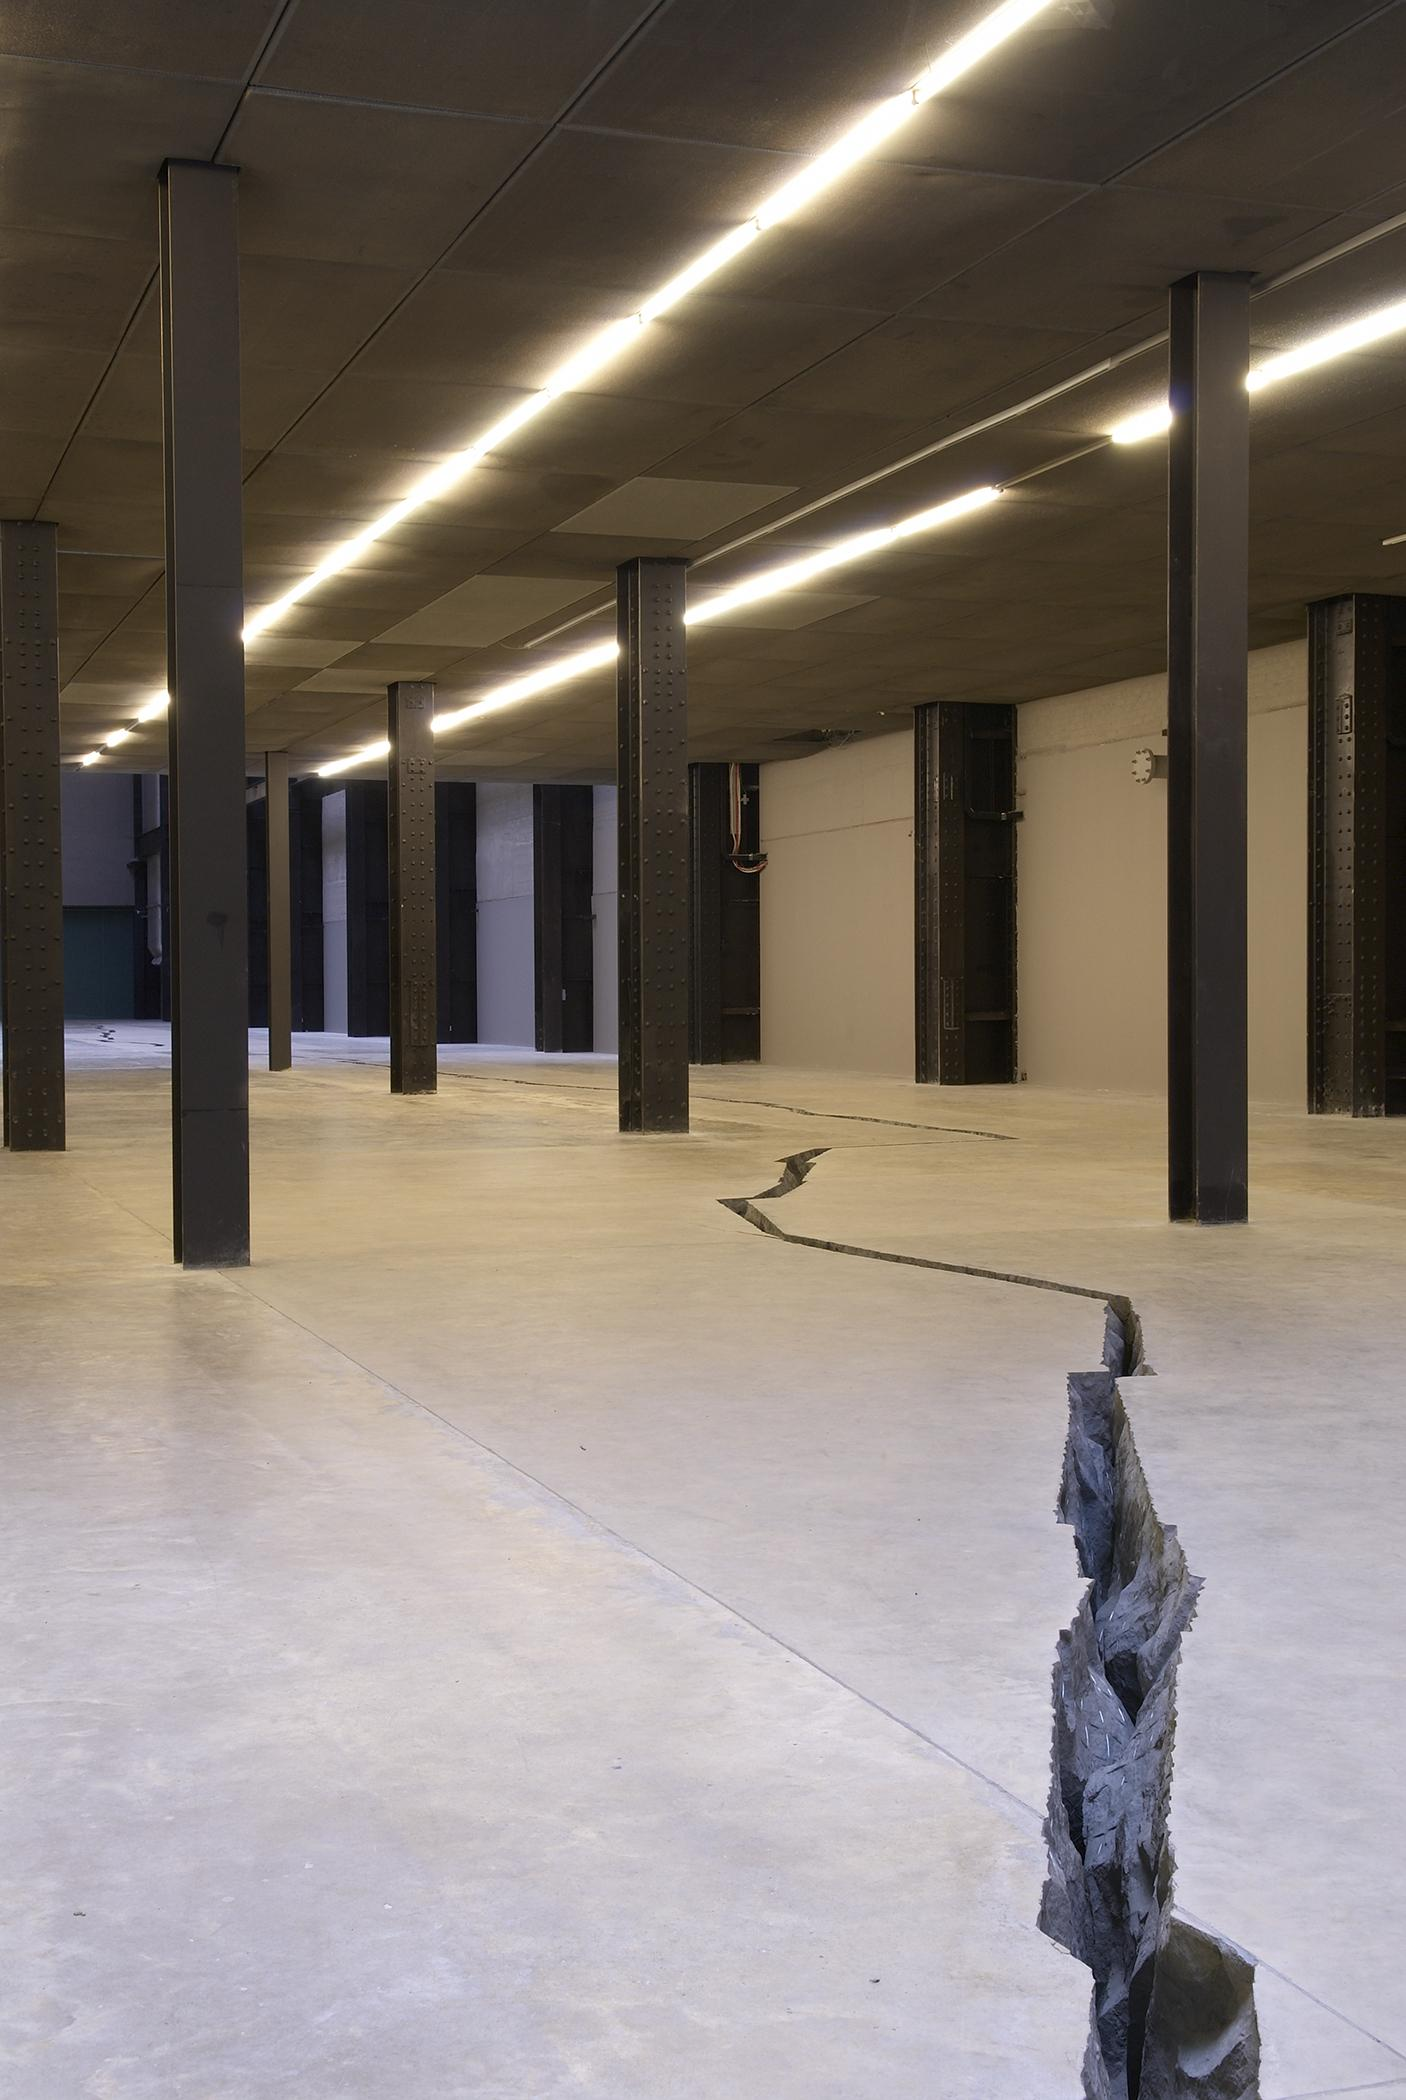 A photograph shows a room with several black columns and a crack in the floor running between them.